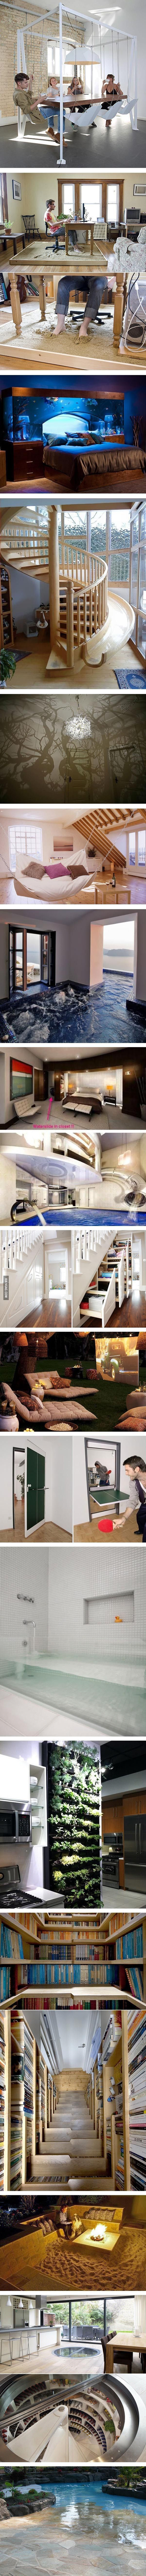 18 absolutely AMAZING House Ideas!<<< I like all but the sand under the desk one. Because that would be awful to keep clean with kids and animals around.